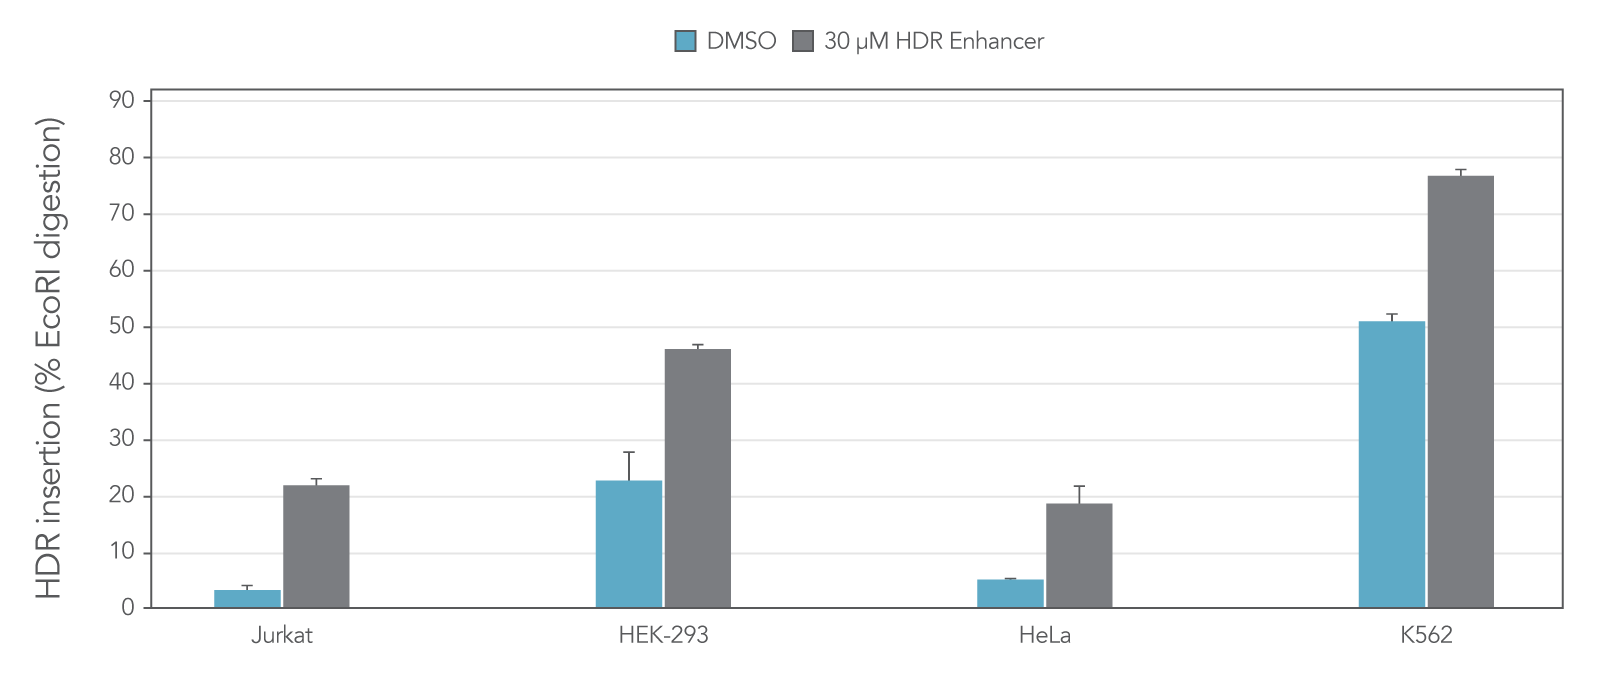 Alt-R HDR Enhancer improves HDR efficiency in commonly used human cell lines, including Jurkat, HEK-293, HeLa, and K562